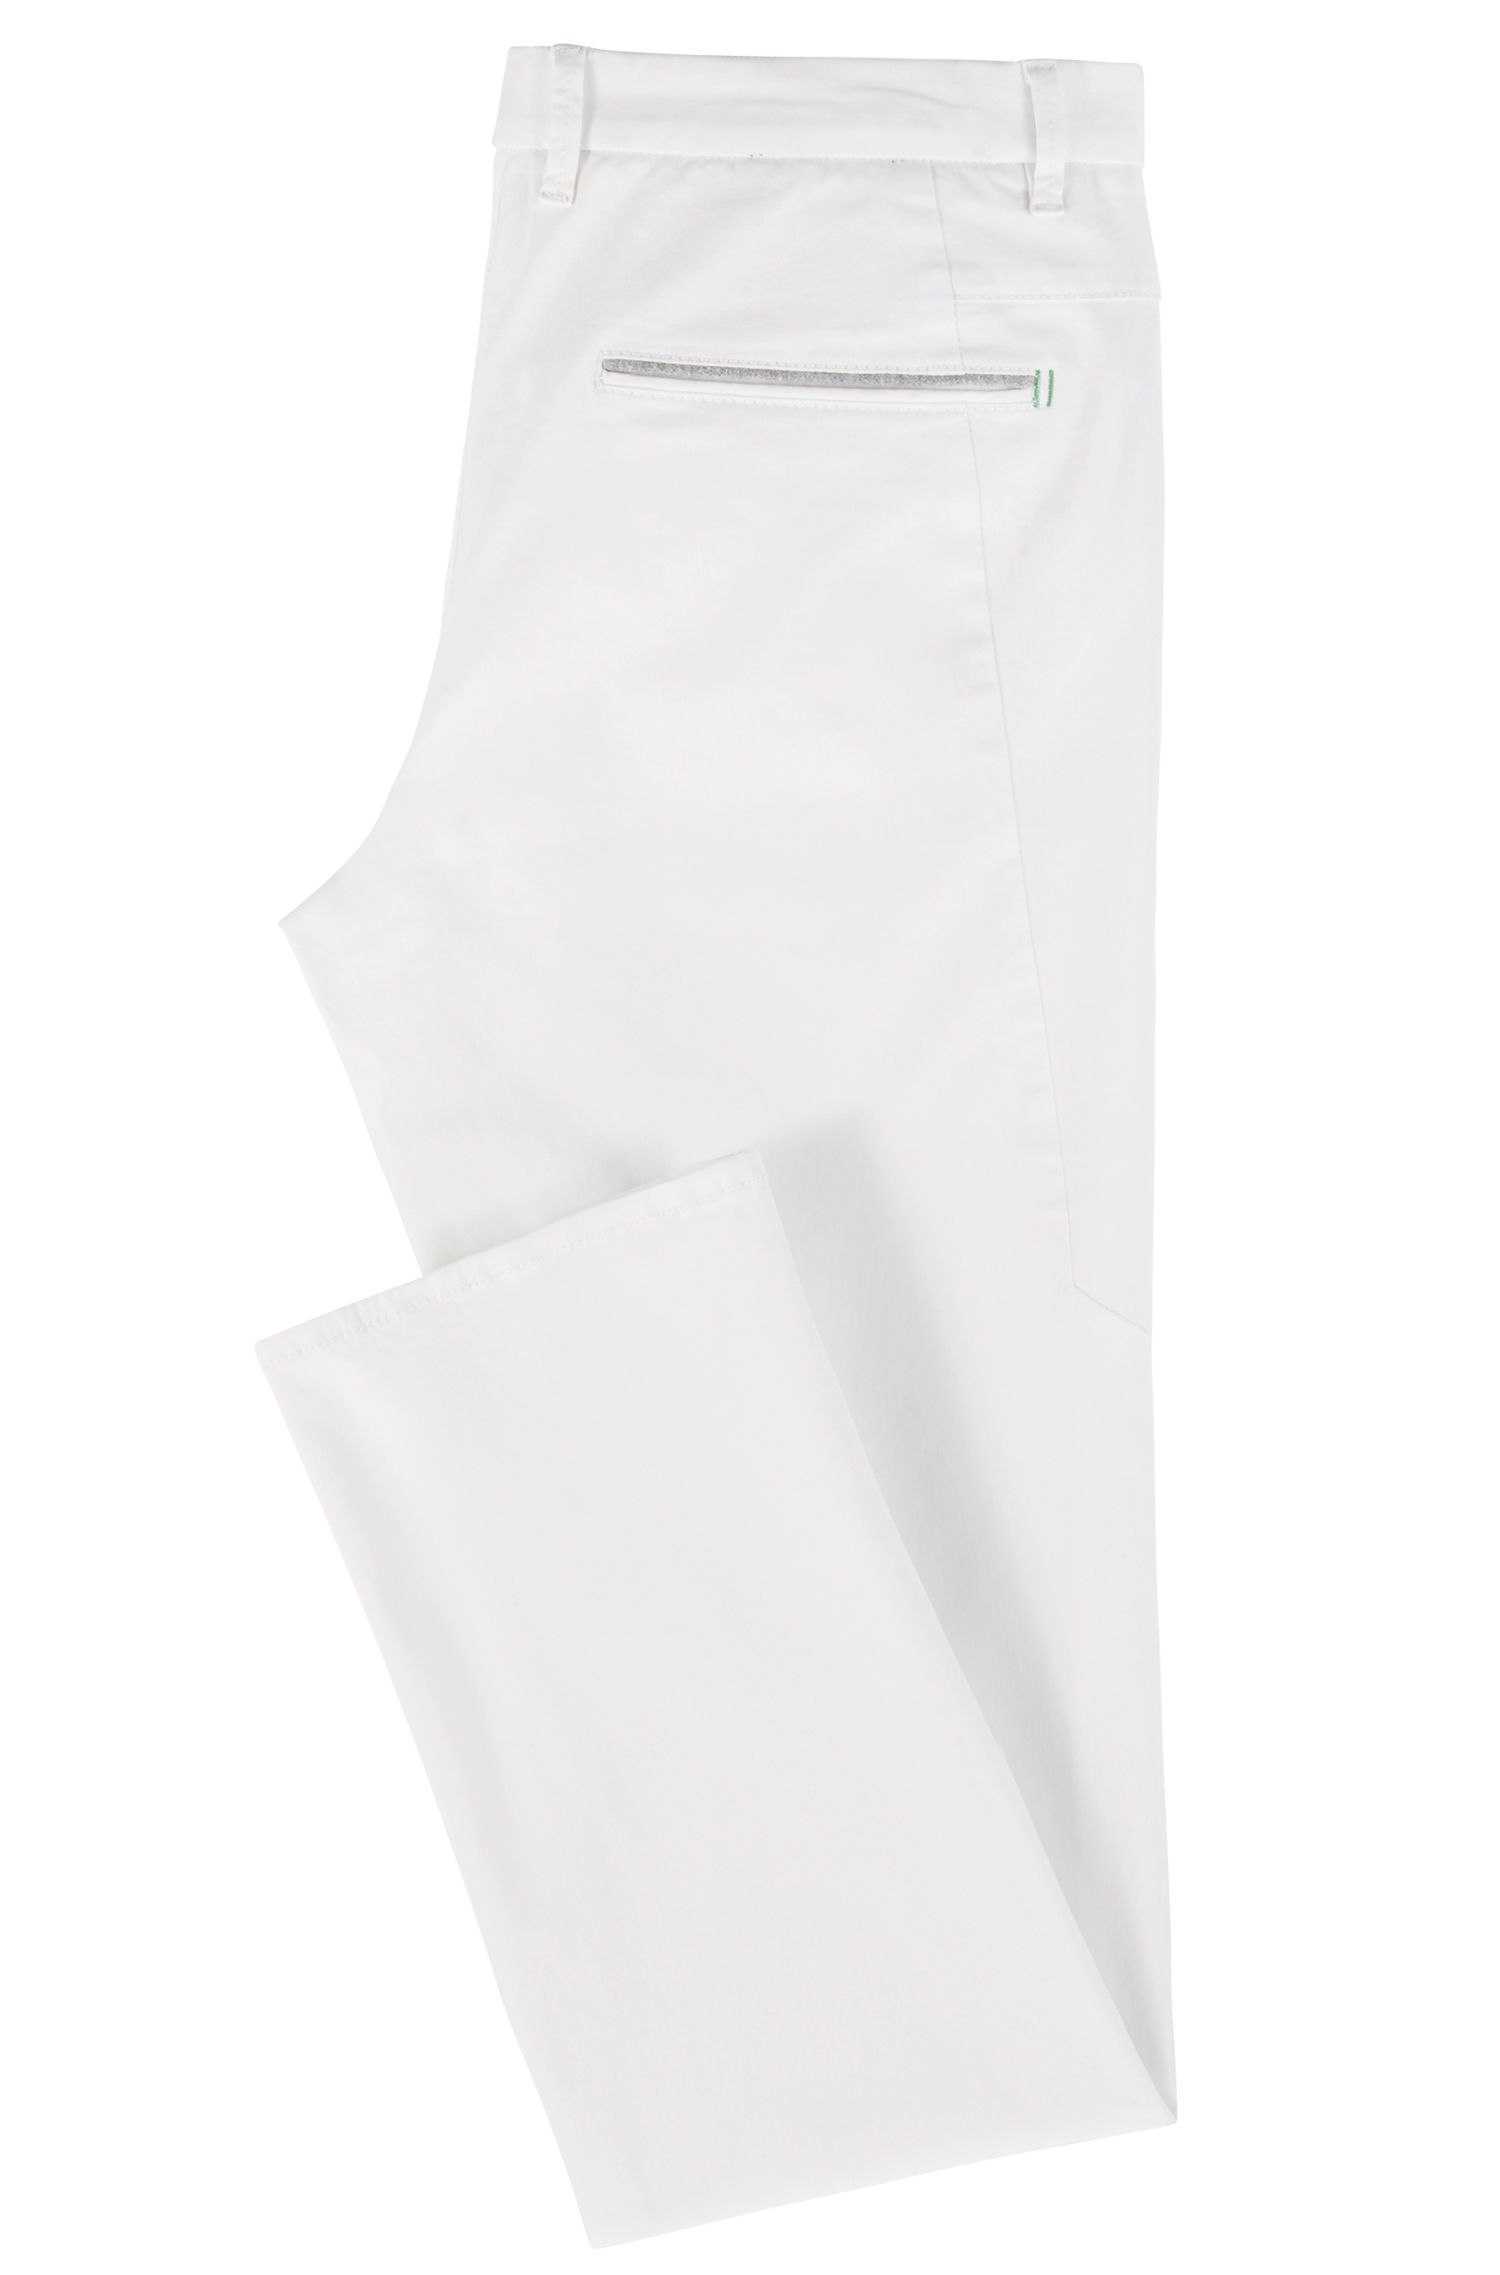 Pantalon Regular Fit en tissu stretch au toucher satiné, Blanc